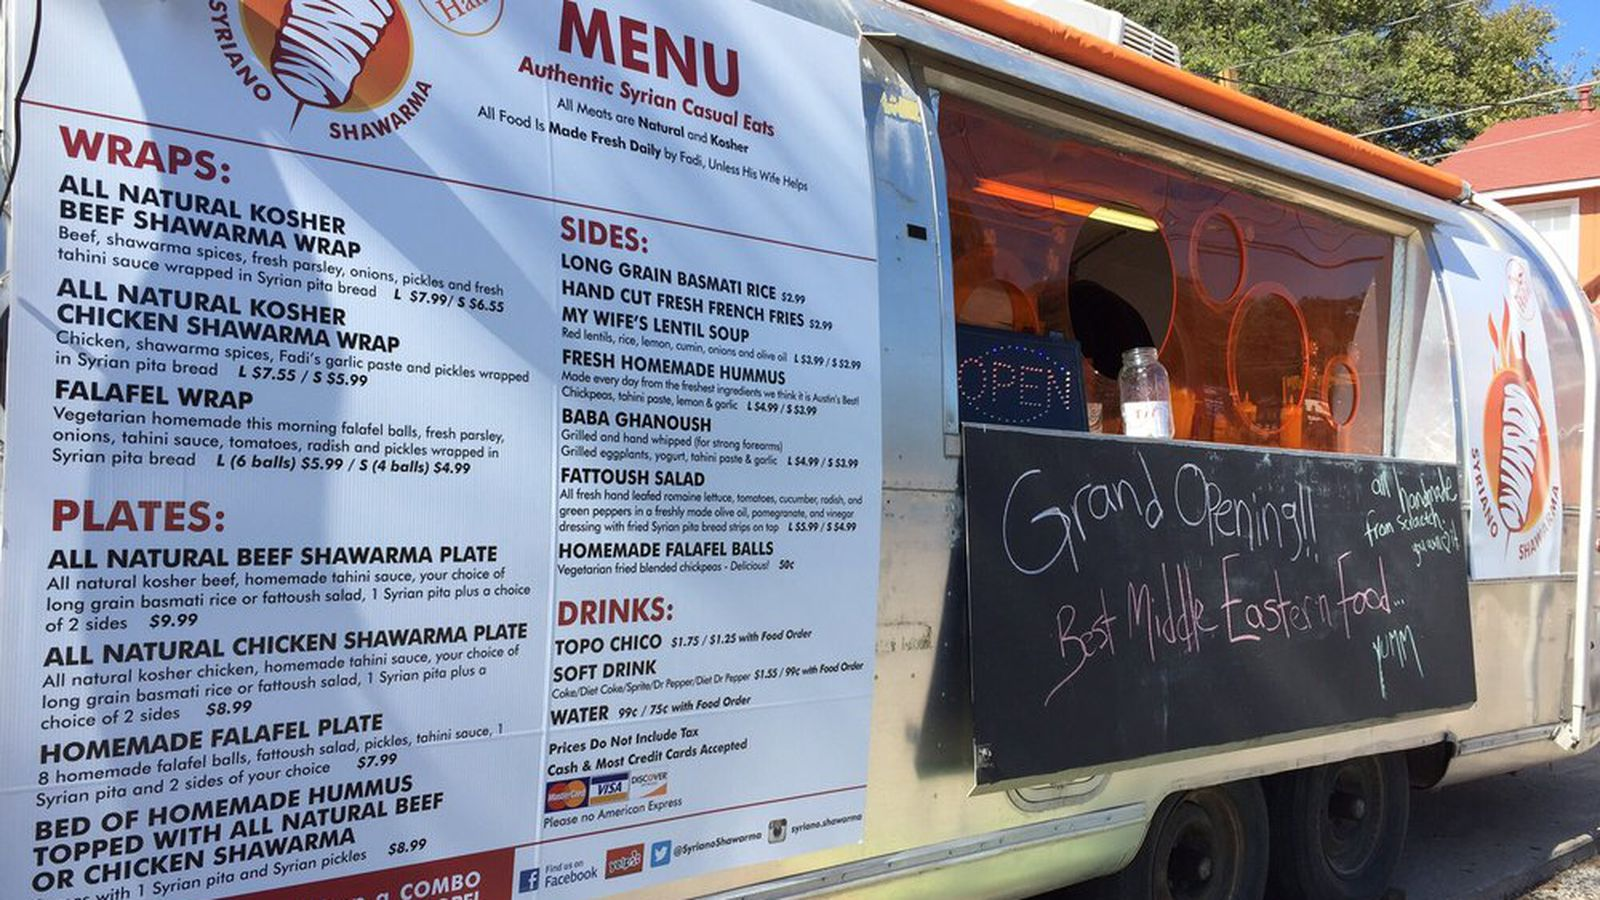 Don Japanese Ceviche 7 And More Hot New Food Trucks